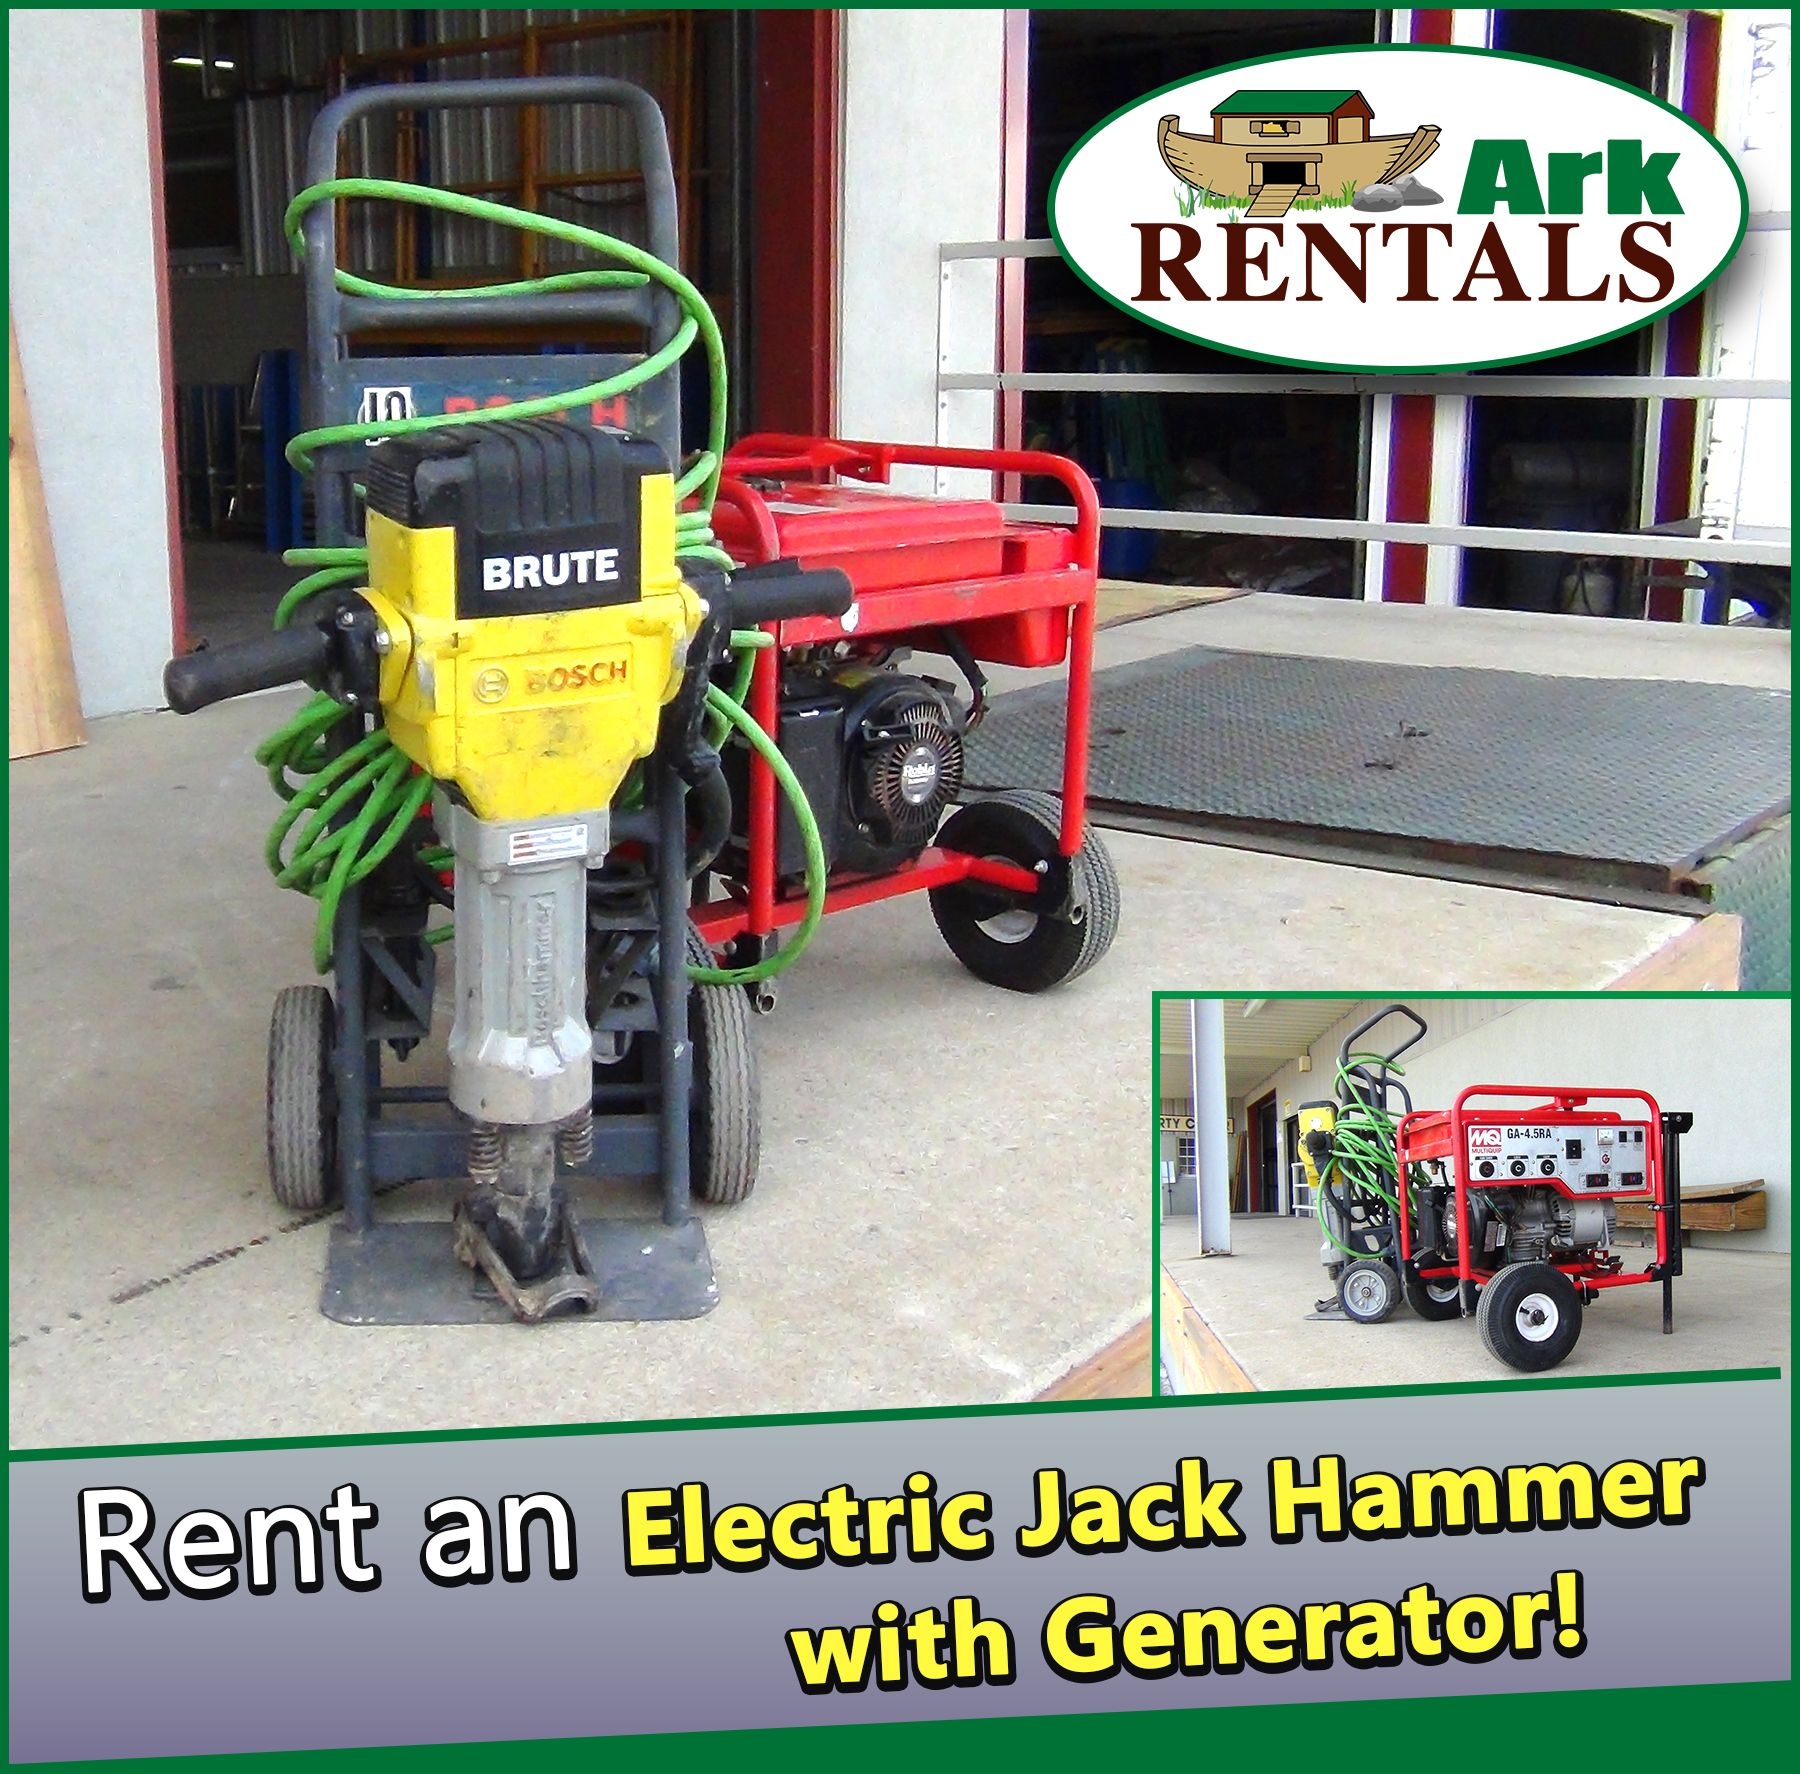 Break apart that old concrete Rent an Electric Jack Hammer with